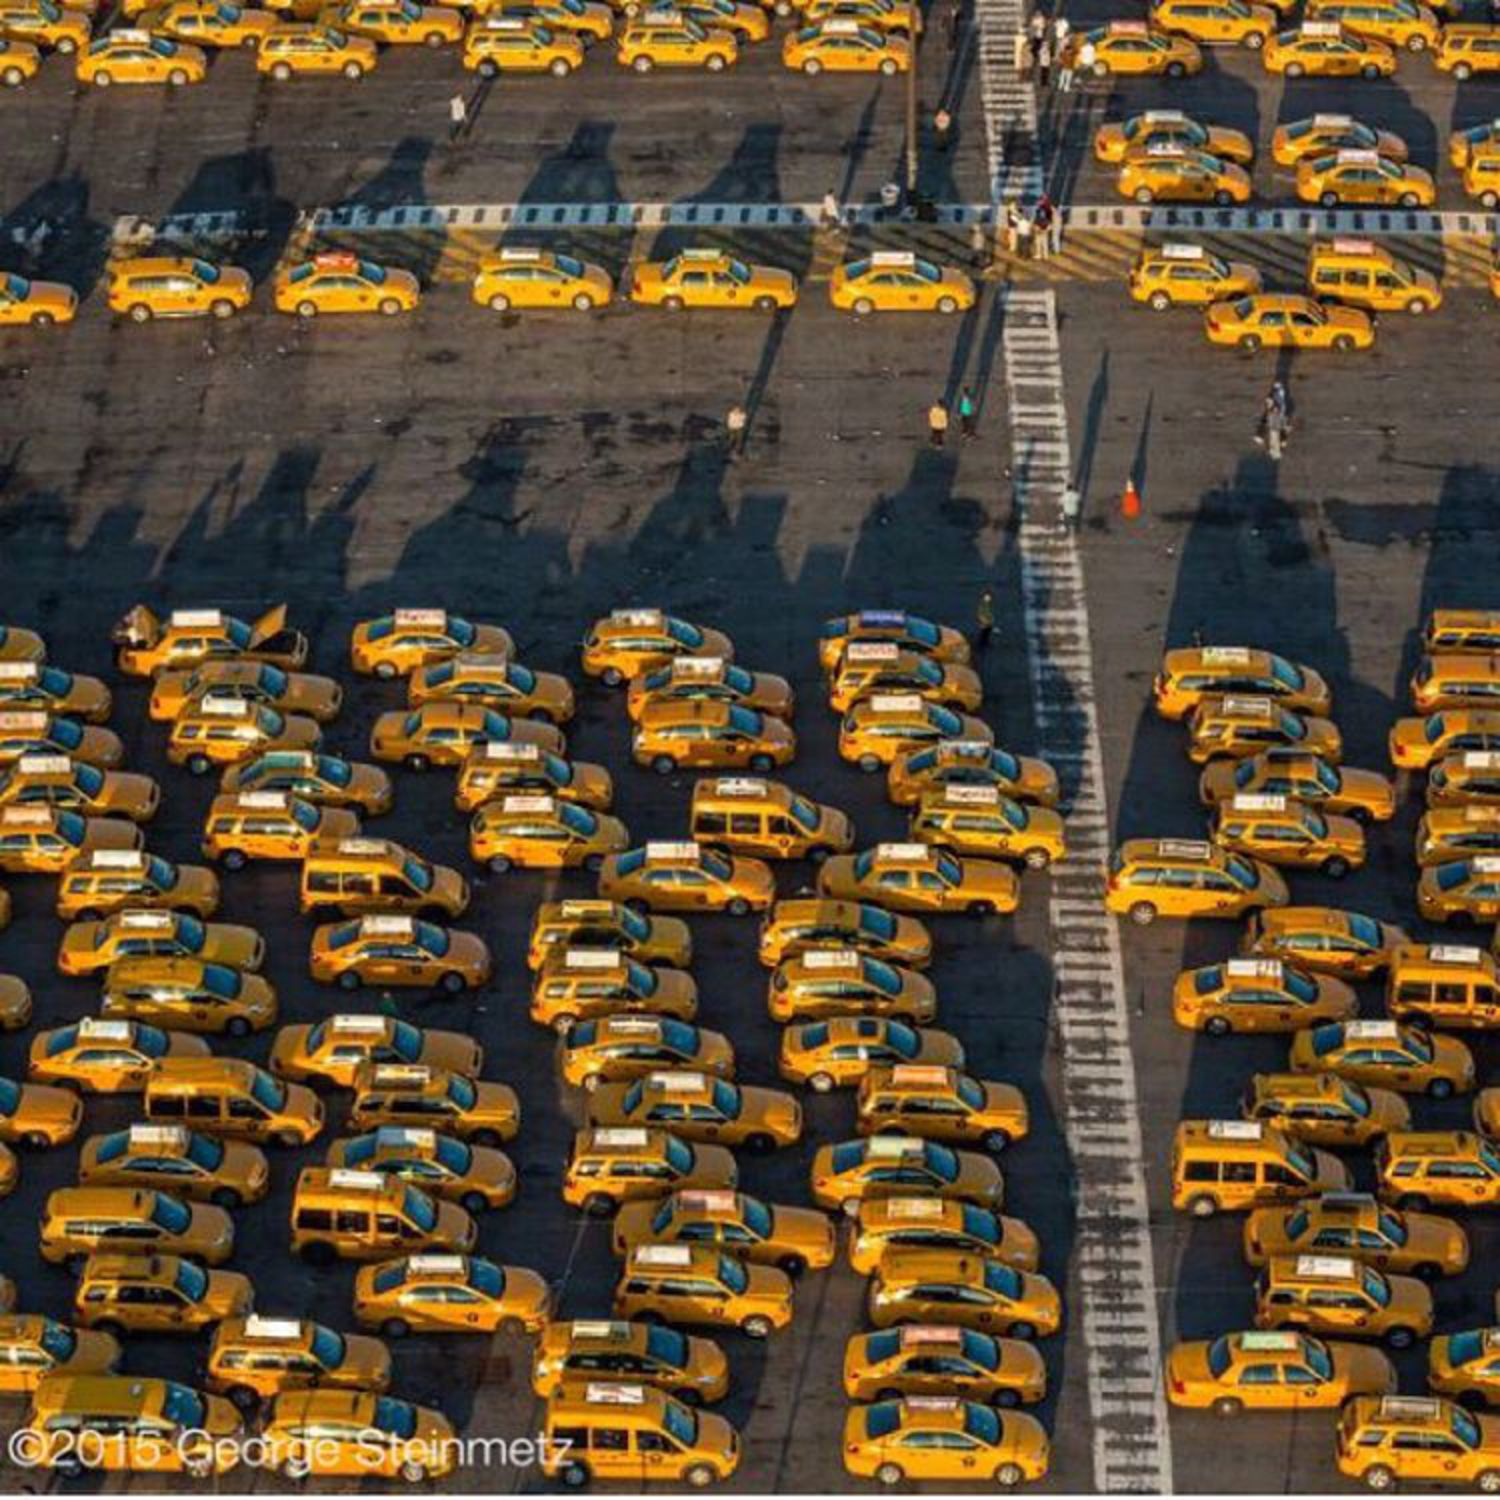 Photograph by George Steinmetz @geosteinmetz / @thephotosociety  It's a long wait for a good fare at JFK's Central Taxi Hold lot.  According to the 2014 Taxi Factbook, people traveling to and from the city's airports represent 5% of all taxi trips, and about 10% of all passengers arriving at and departing from #JFK use a taxi.